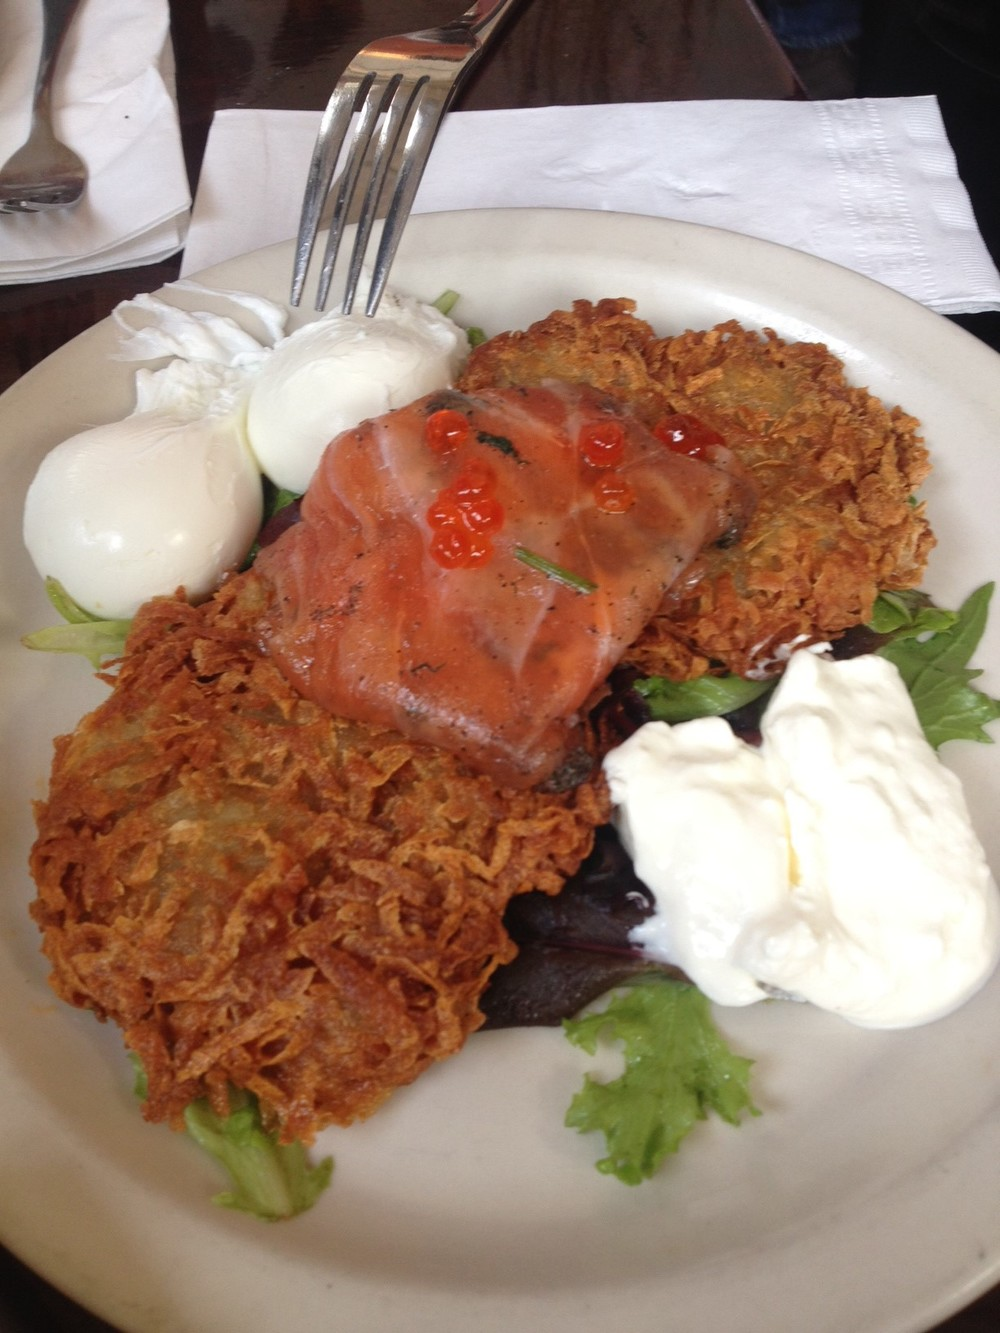 The Aristocrat - Potato Pancakes with Poached Eggs and Smoked Salmon